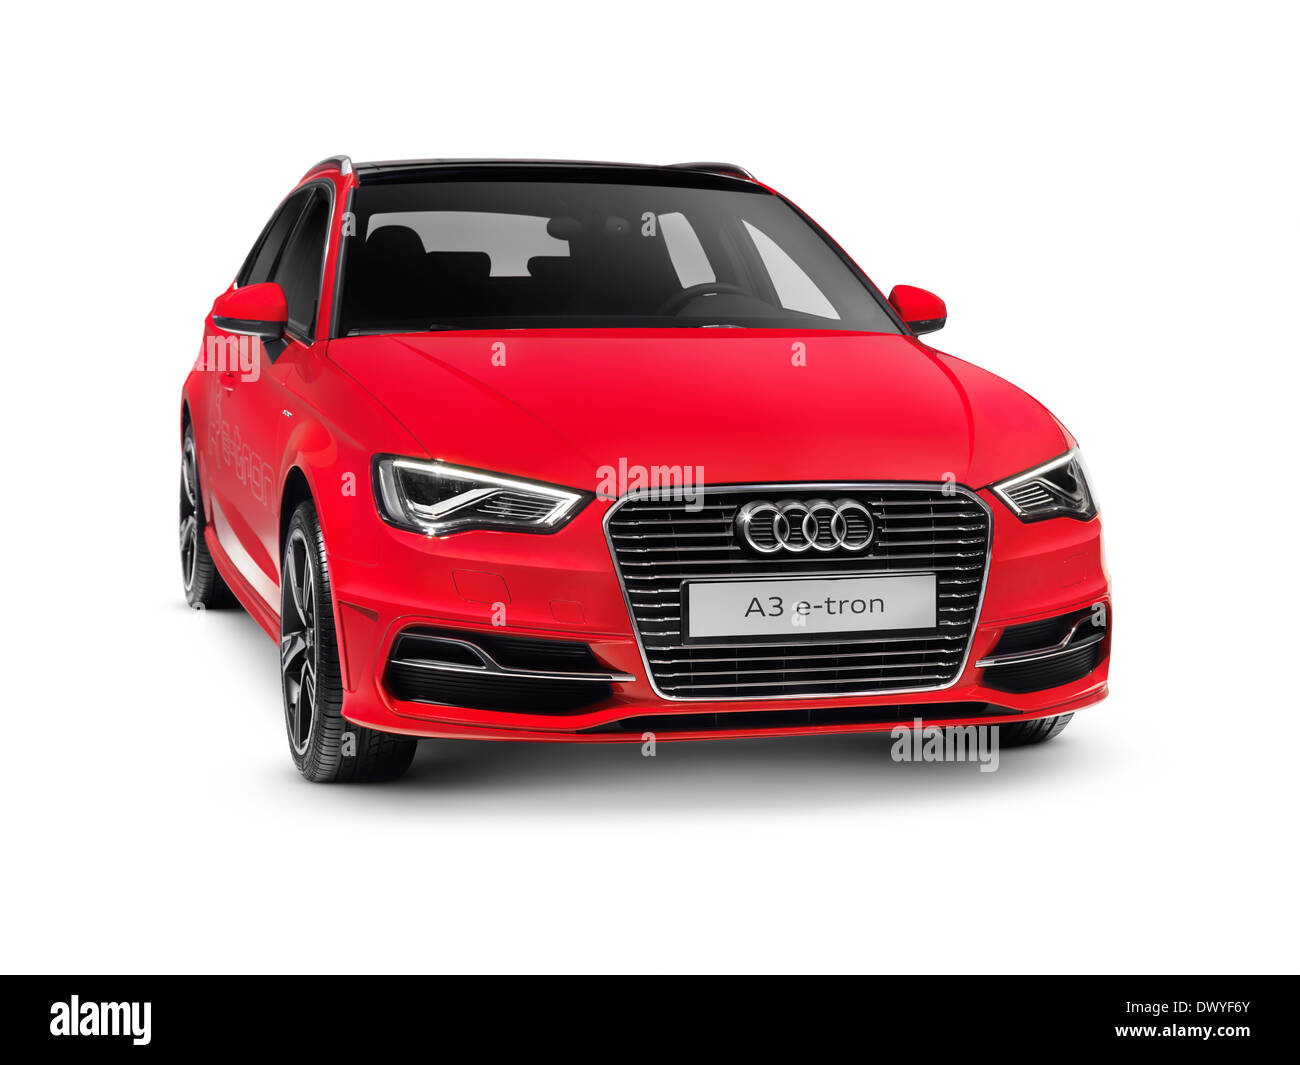 red 2015 audi a3 sportback e tron plug in hybrid car. Black Bedroom Furniture Sets. Home Design Ideas